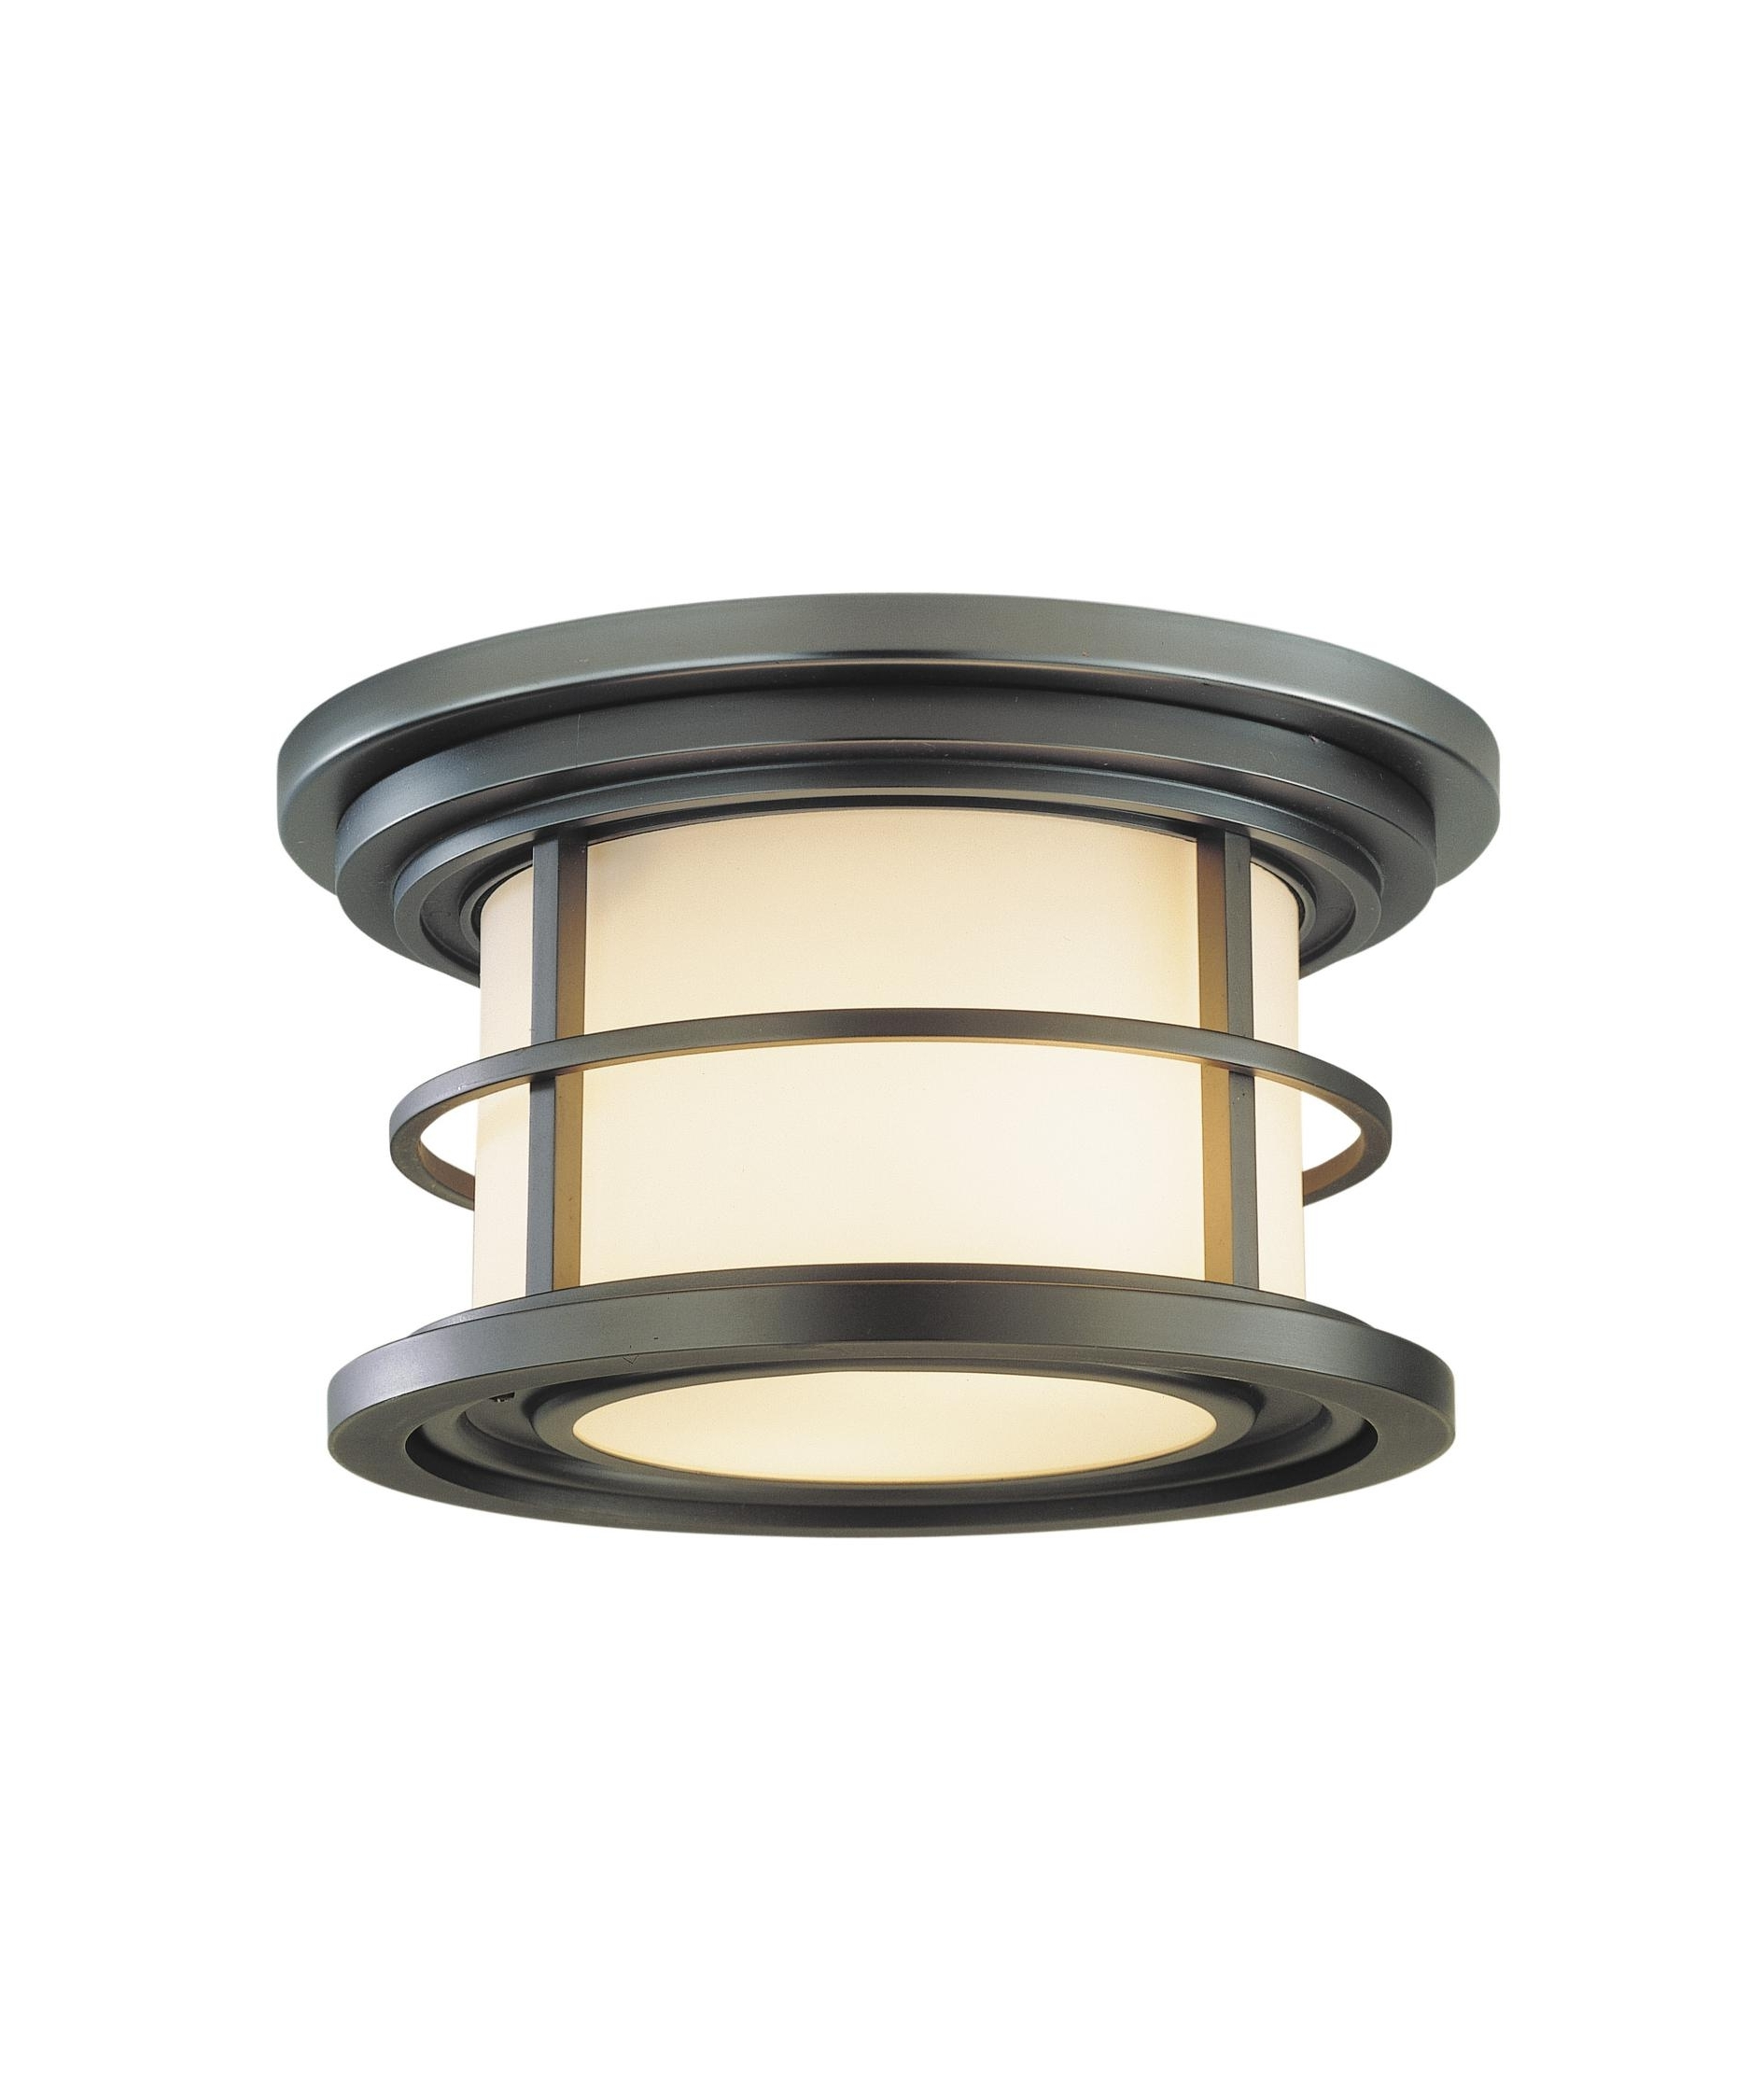 Murray Feiss Ol2213 Lighthouse 10 Inch Wide 2 Light Outdoor Flush For Most Recent Outdoor Ceiling Flush Lights (View 10 of 20)